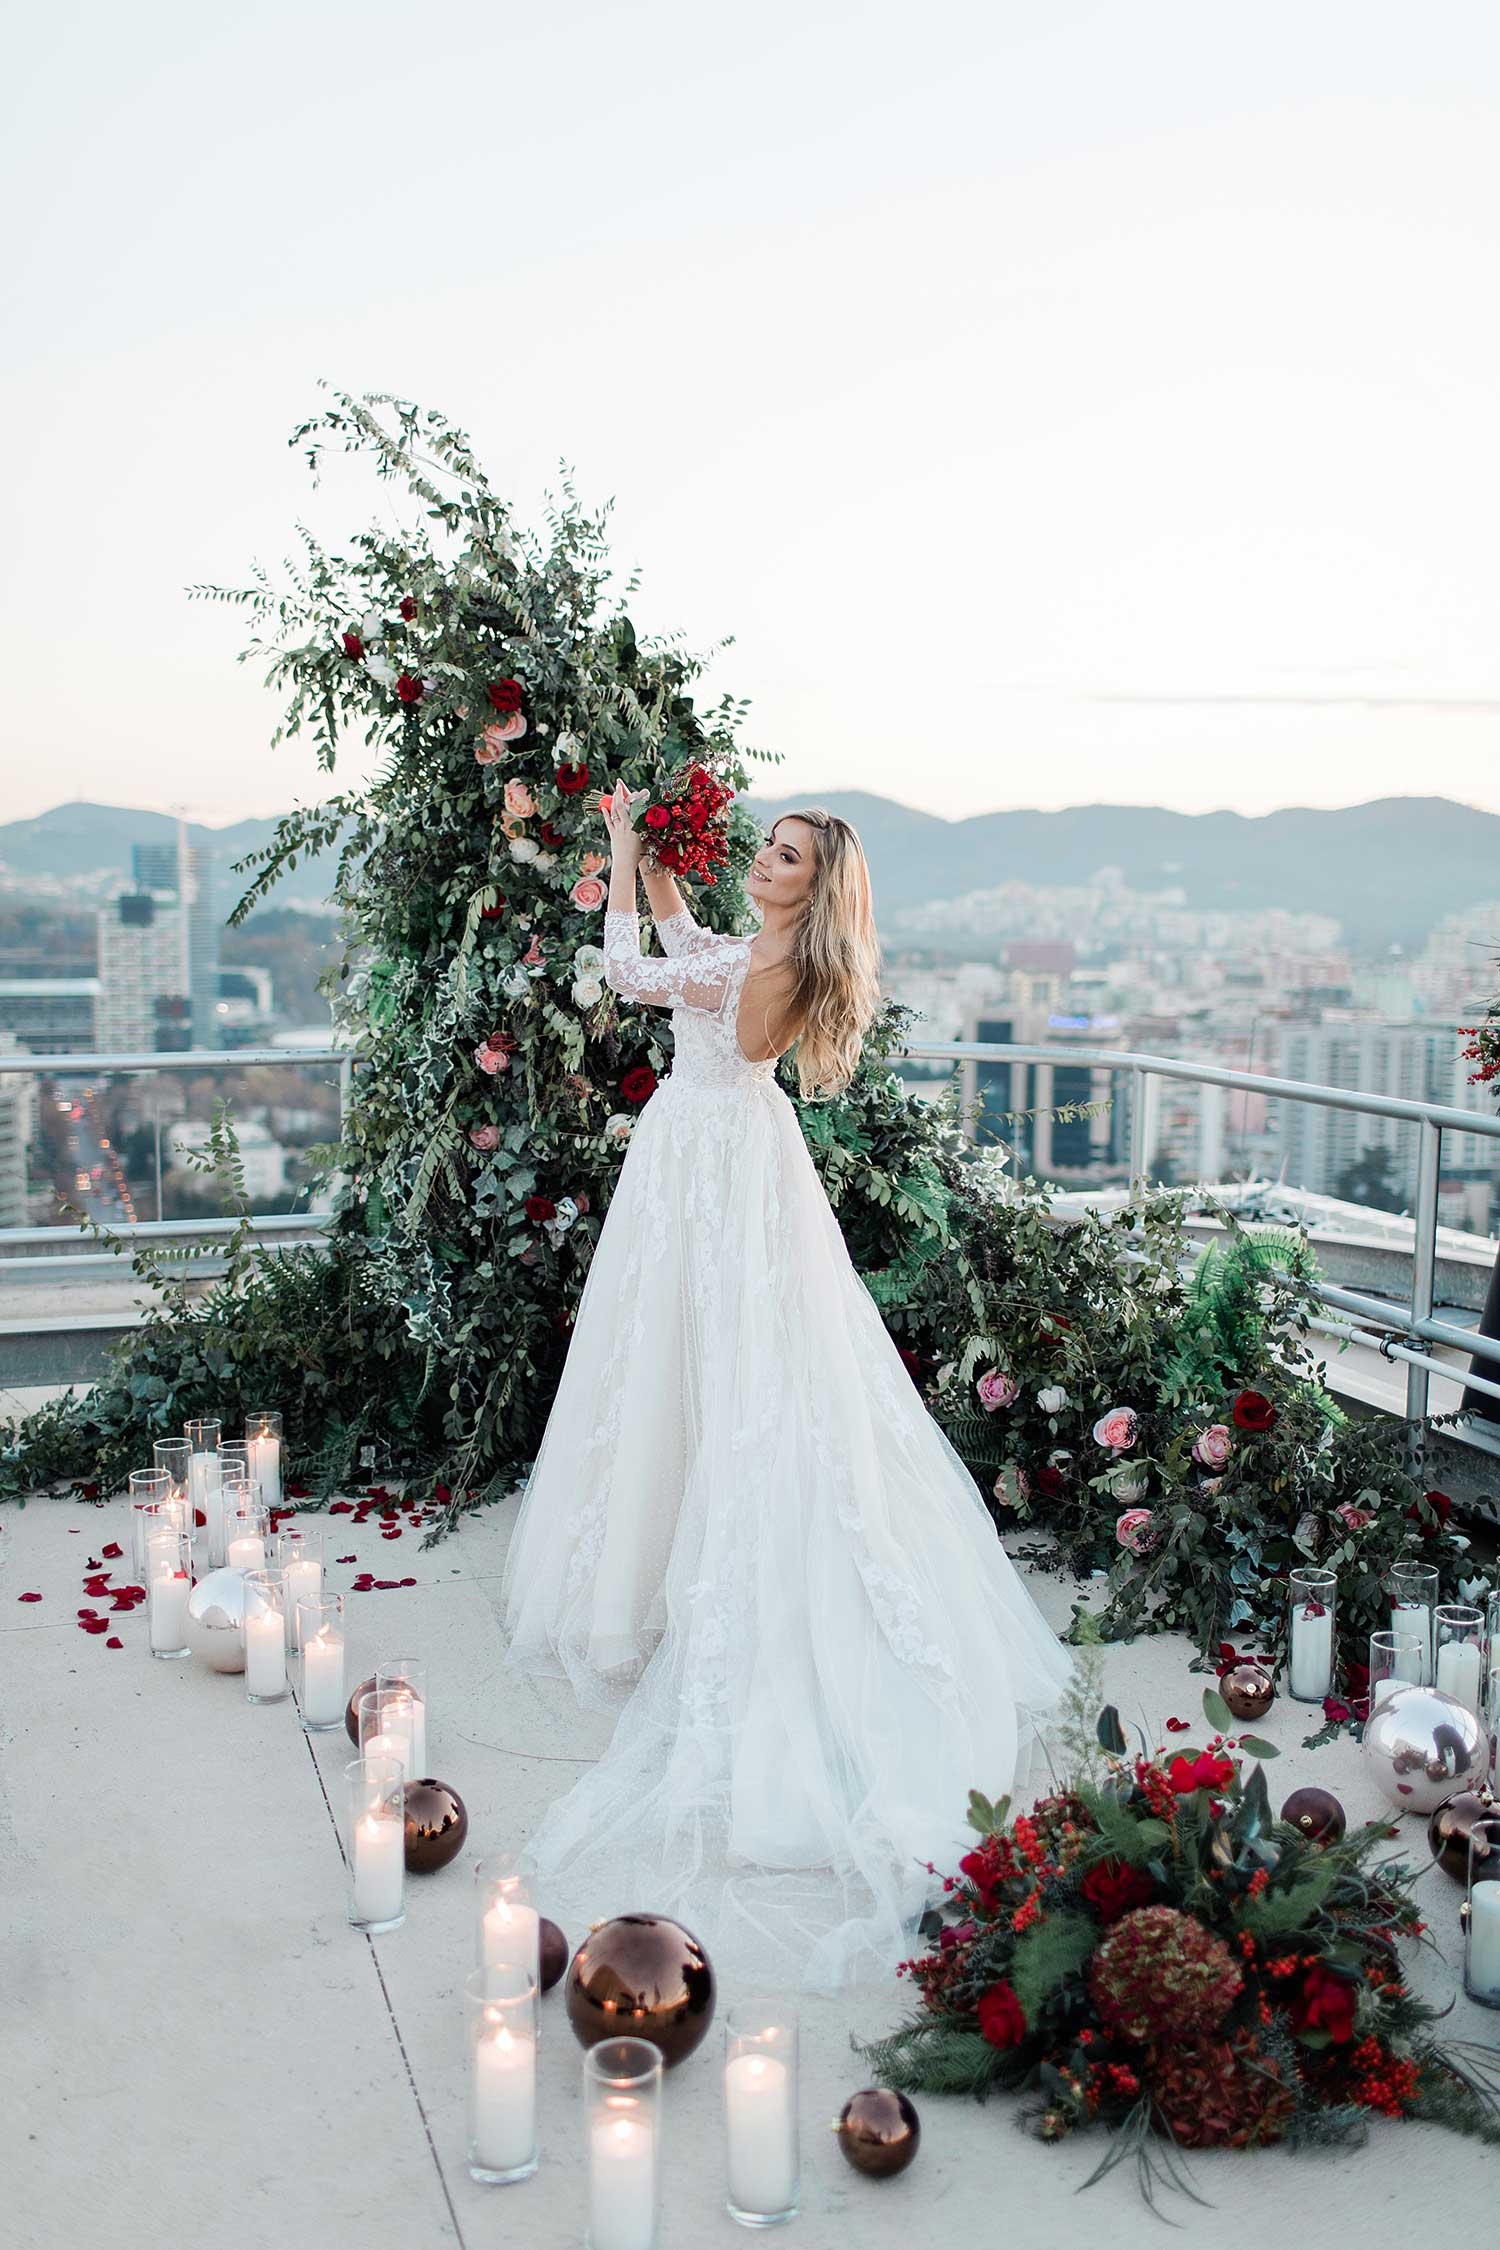 Lovely bride posing with the beautiful decor